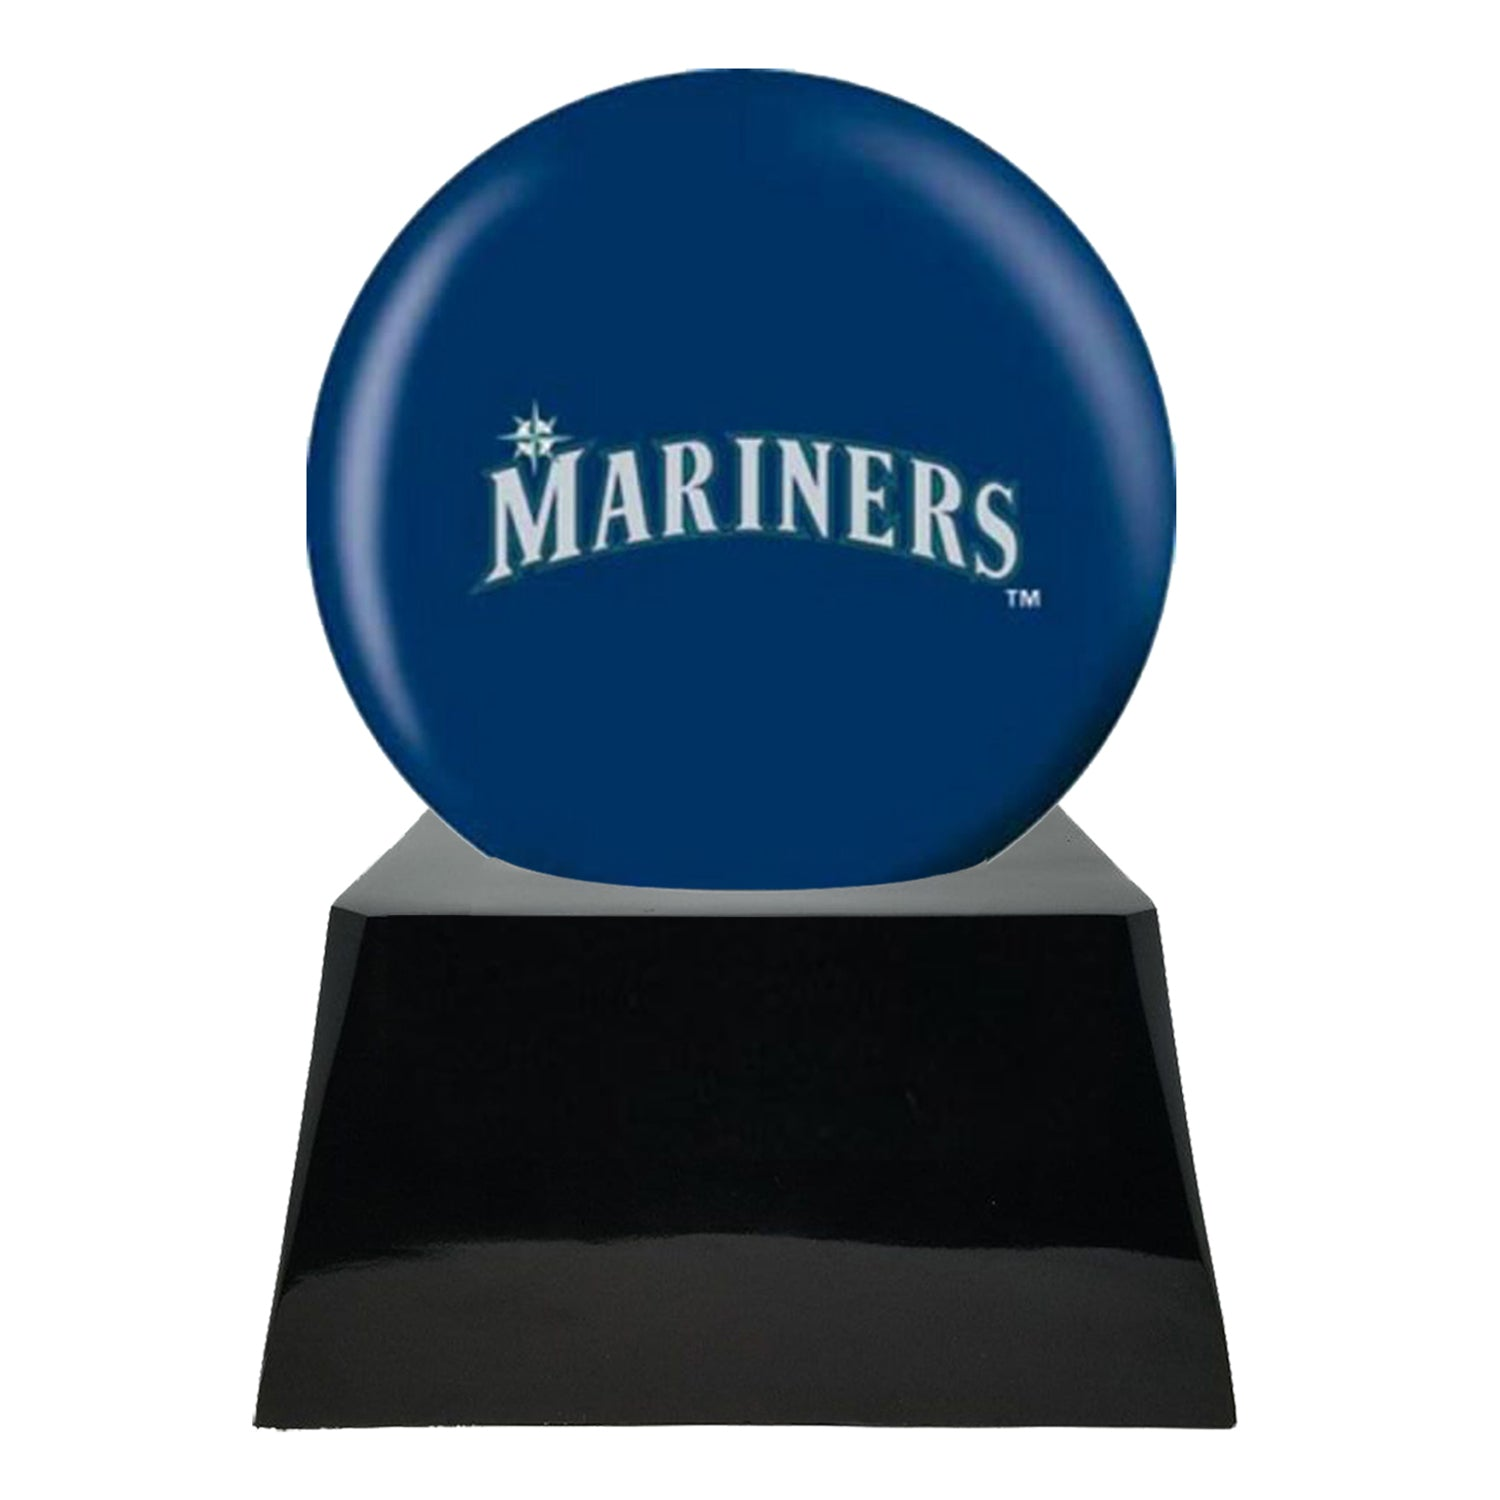 Baseball Team Urn - Seattle Mariners Ball Decor with Custom Metal Plaque Baseball Cremation Urn for Human Ashes - MLB URN - Memorials4u